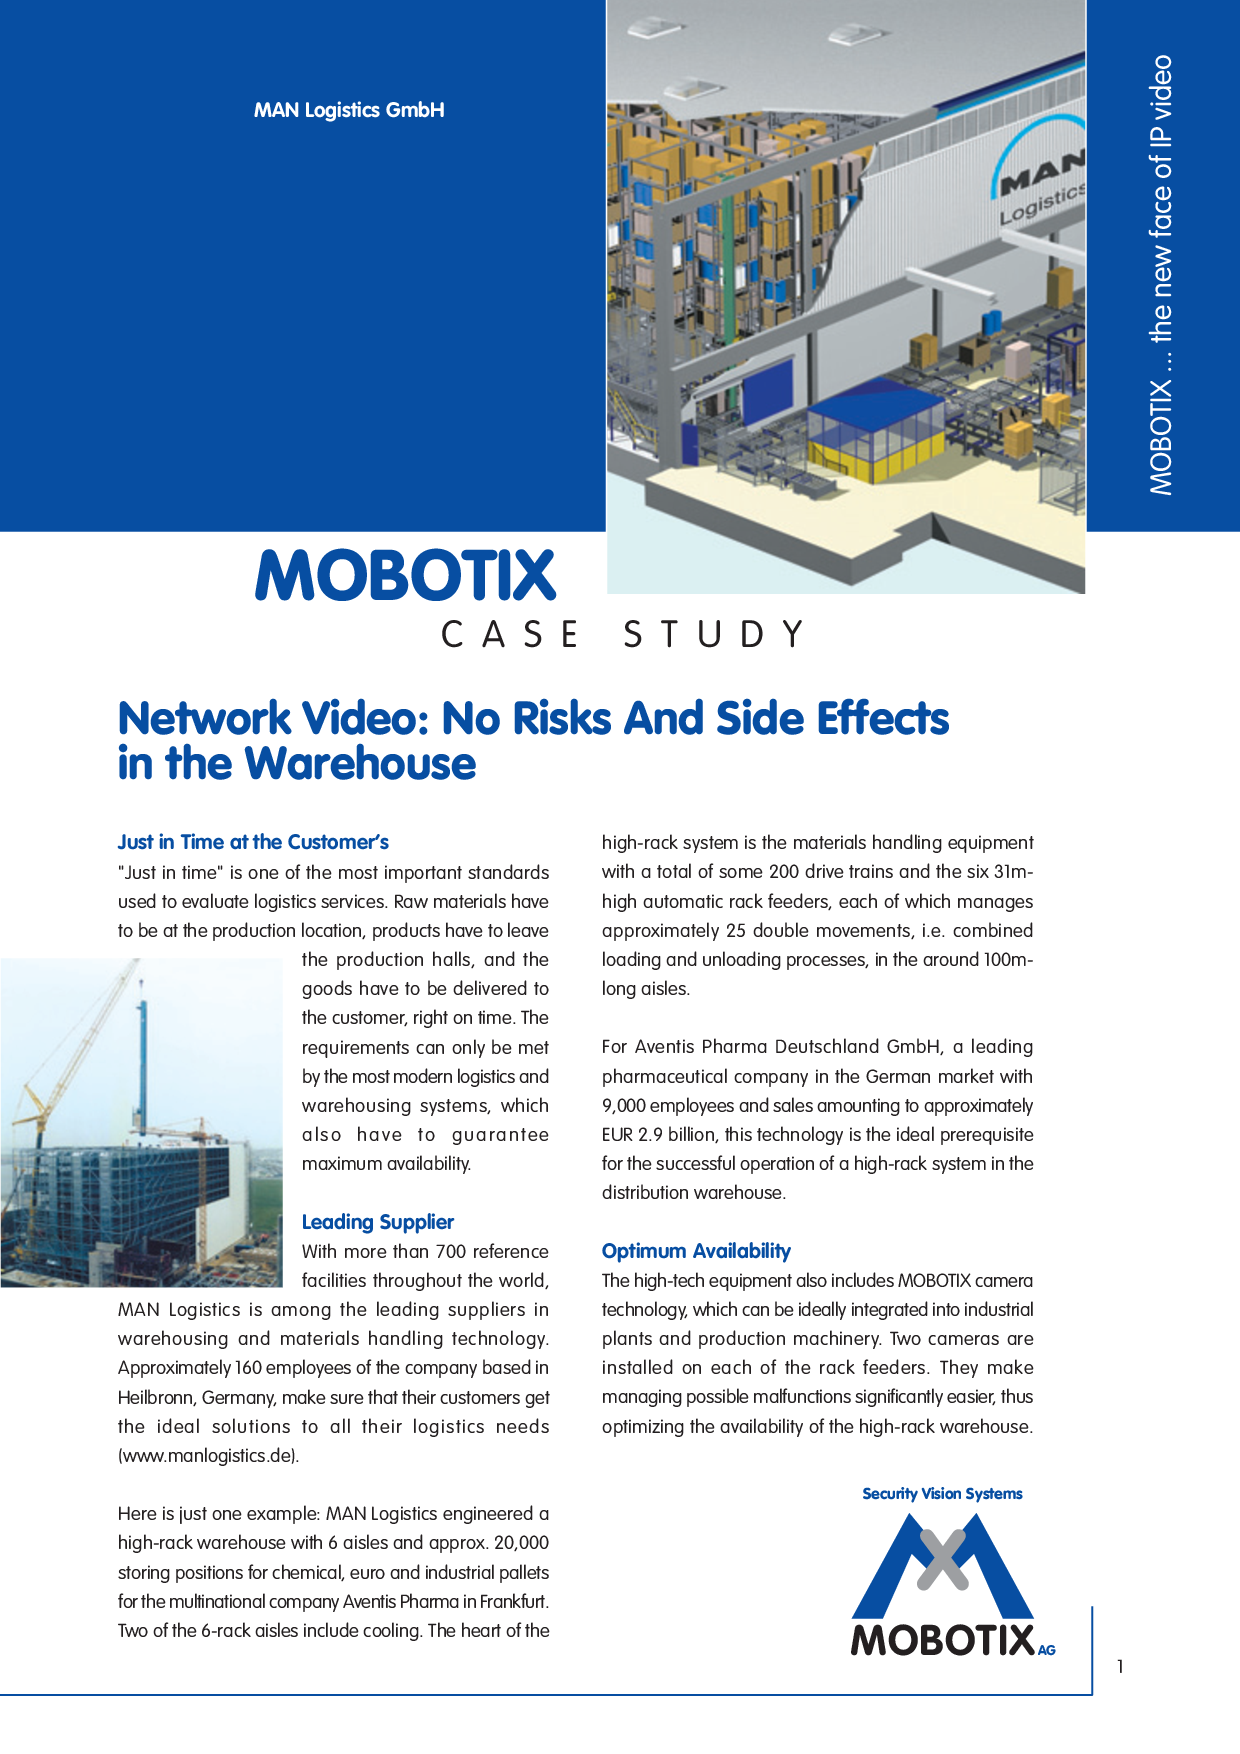 Network Video: No Risks and Side Effects in the Warehouse